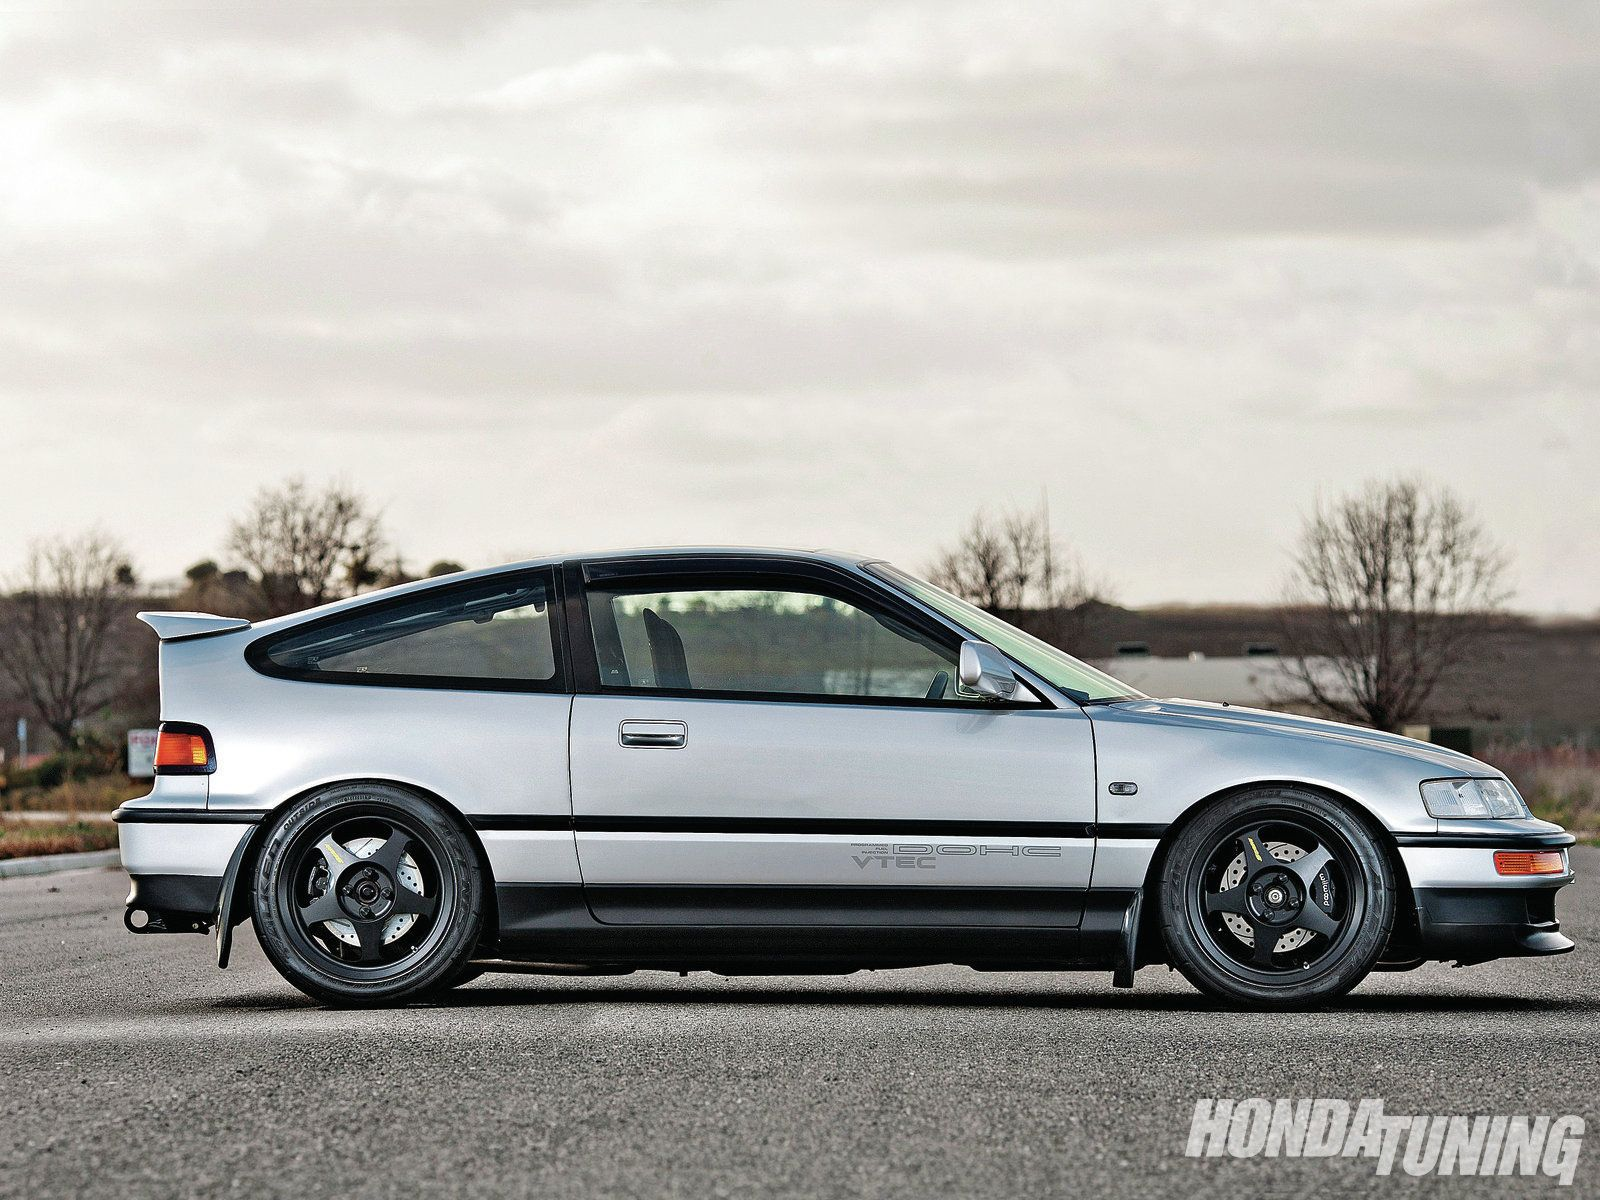 jason powers 39 1988 honda crx si in honda tuning magazine. Black Bedroom Furniture Sets. Home Design Ideas